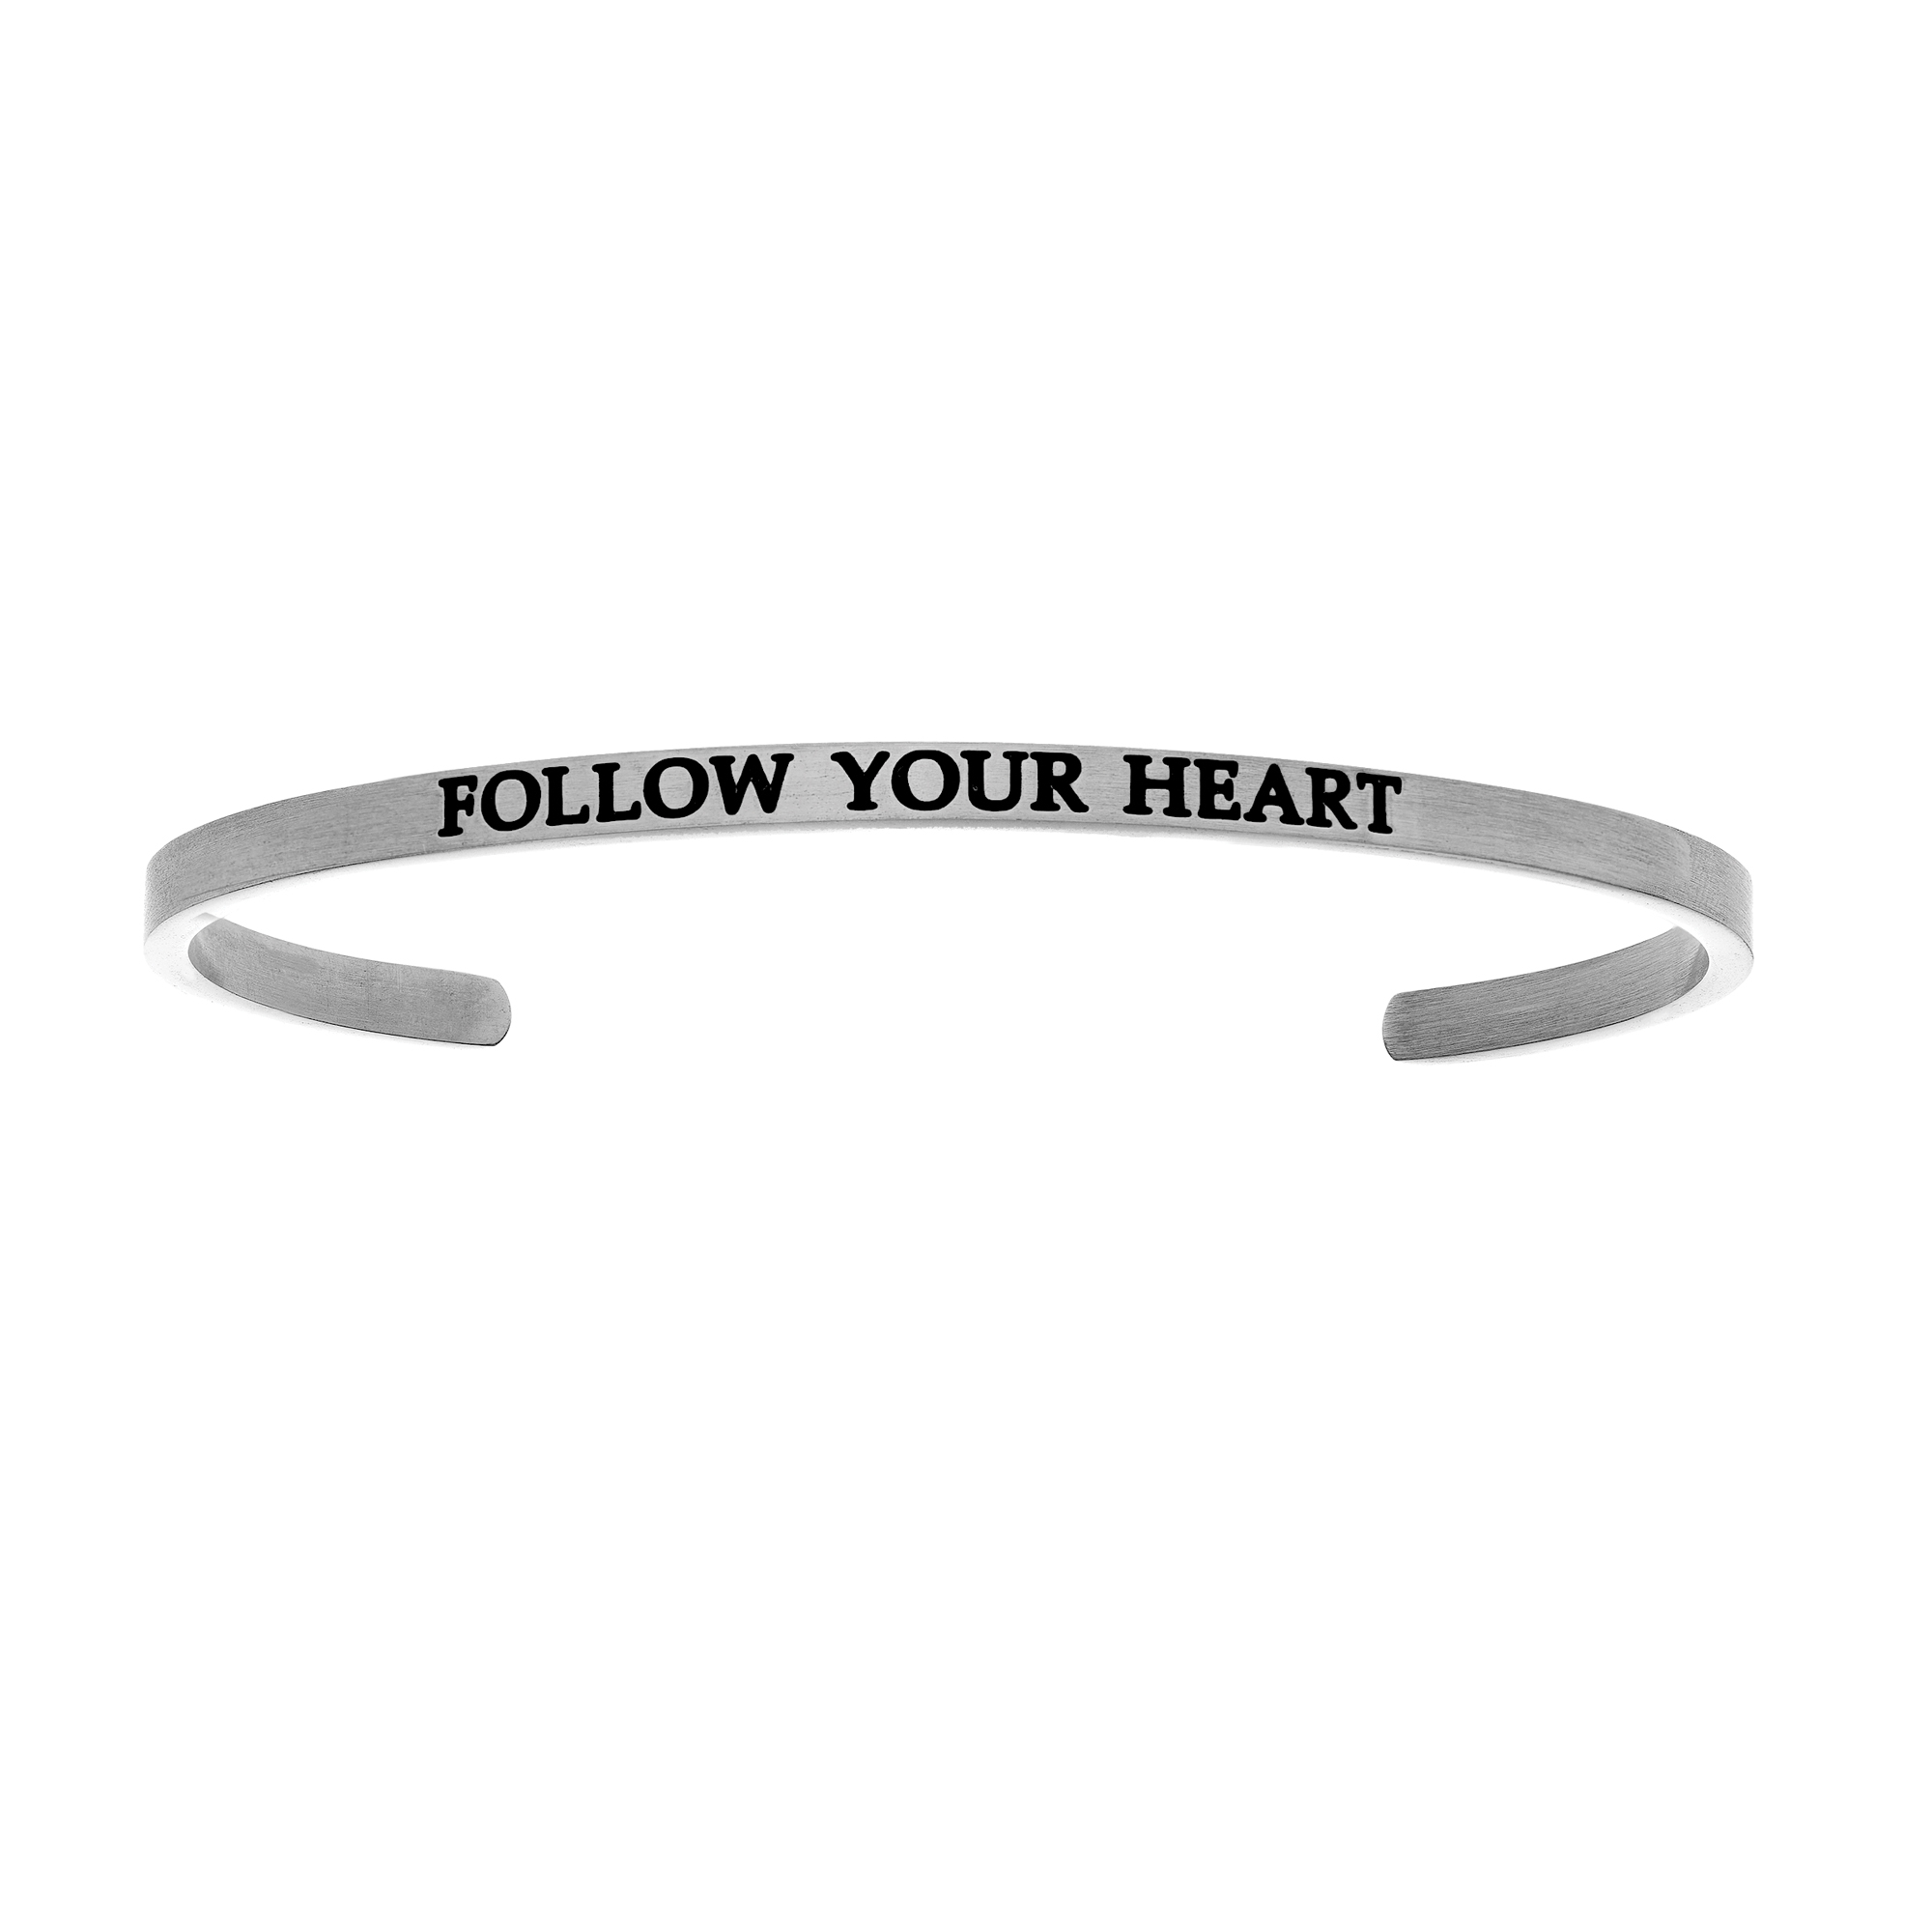 Intuitions Stainless Steel FOLLOW YOUR HEART Diamond Accent Cuff Bangle Bracelet, 7″